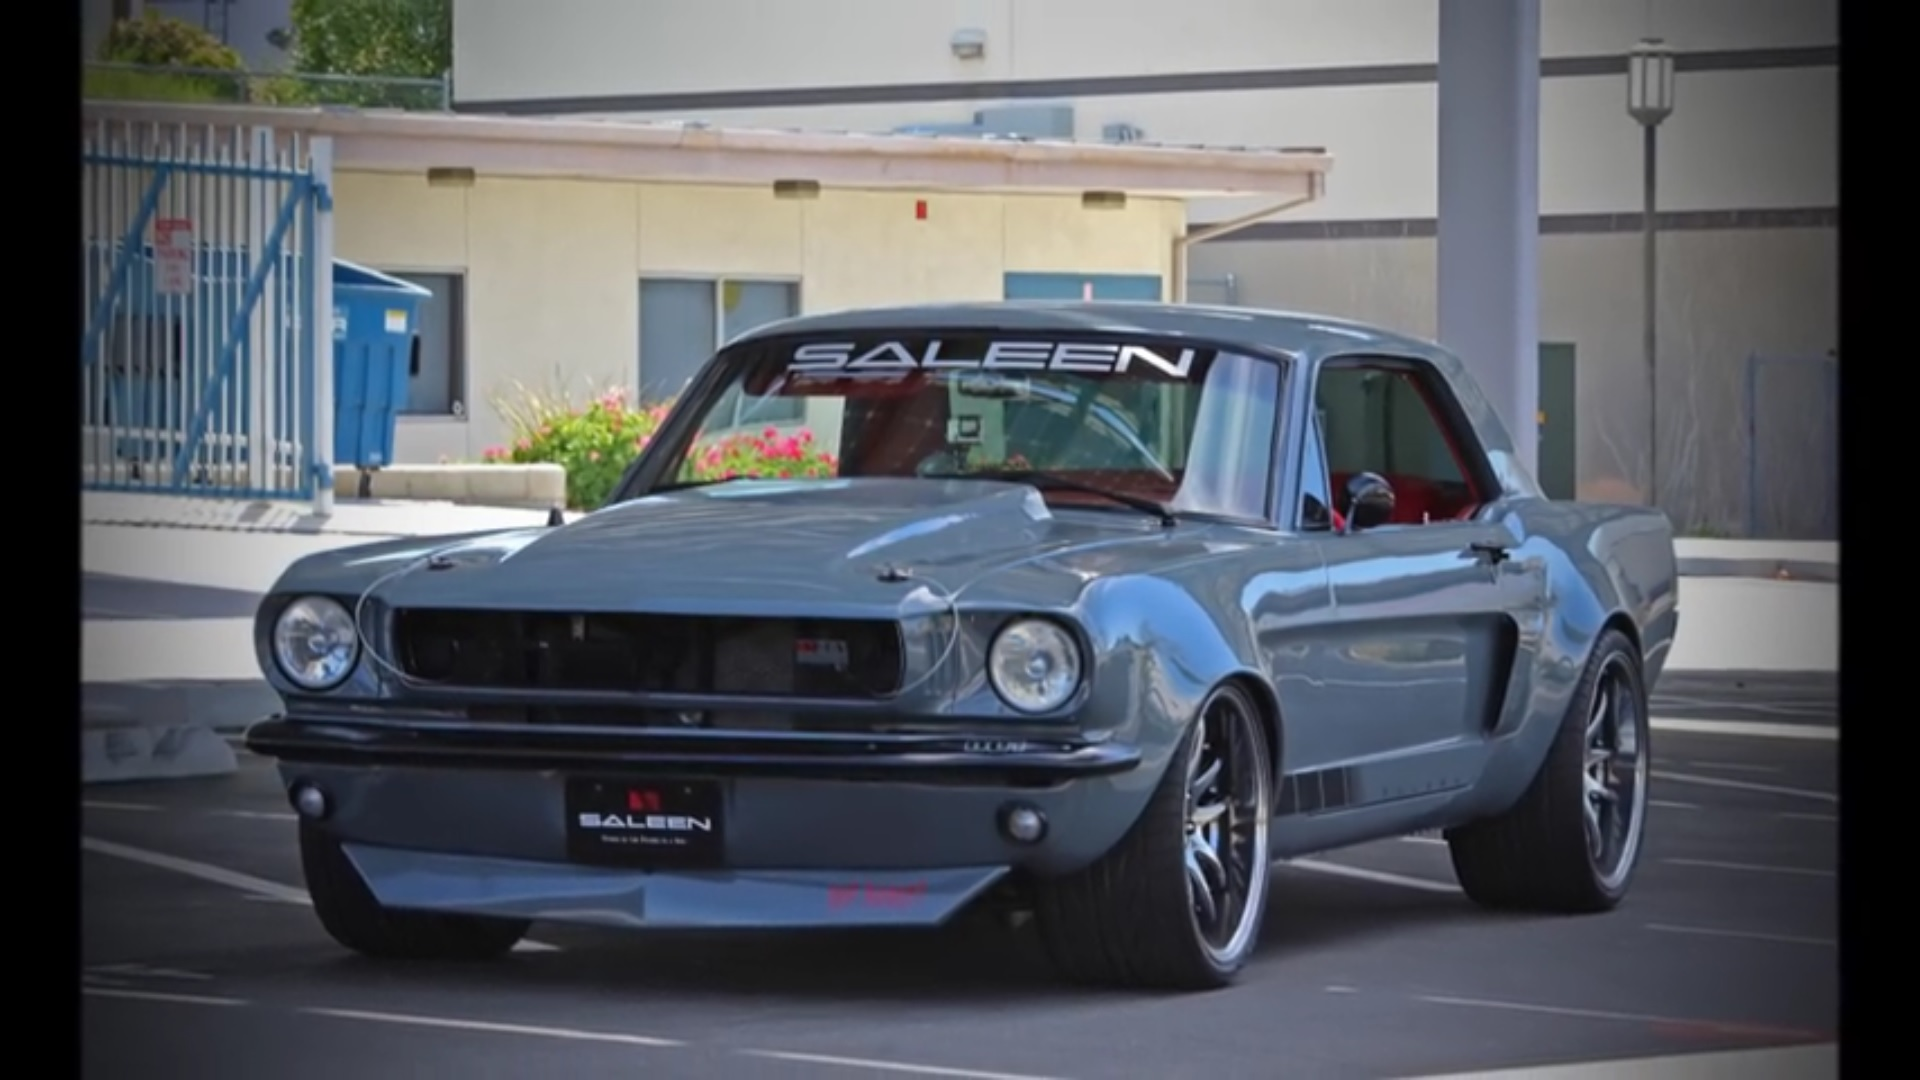 Check out this saleen powered 65 mustang